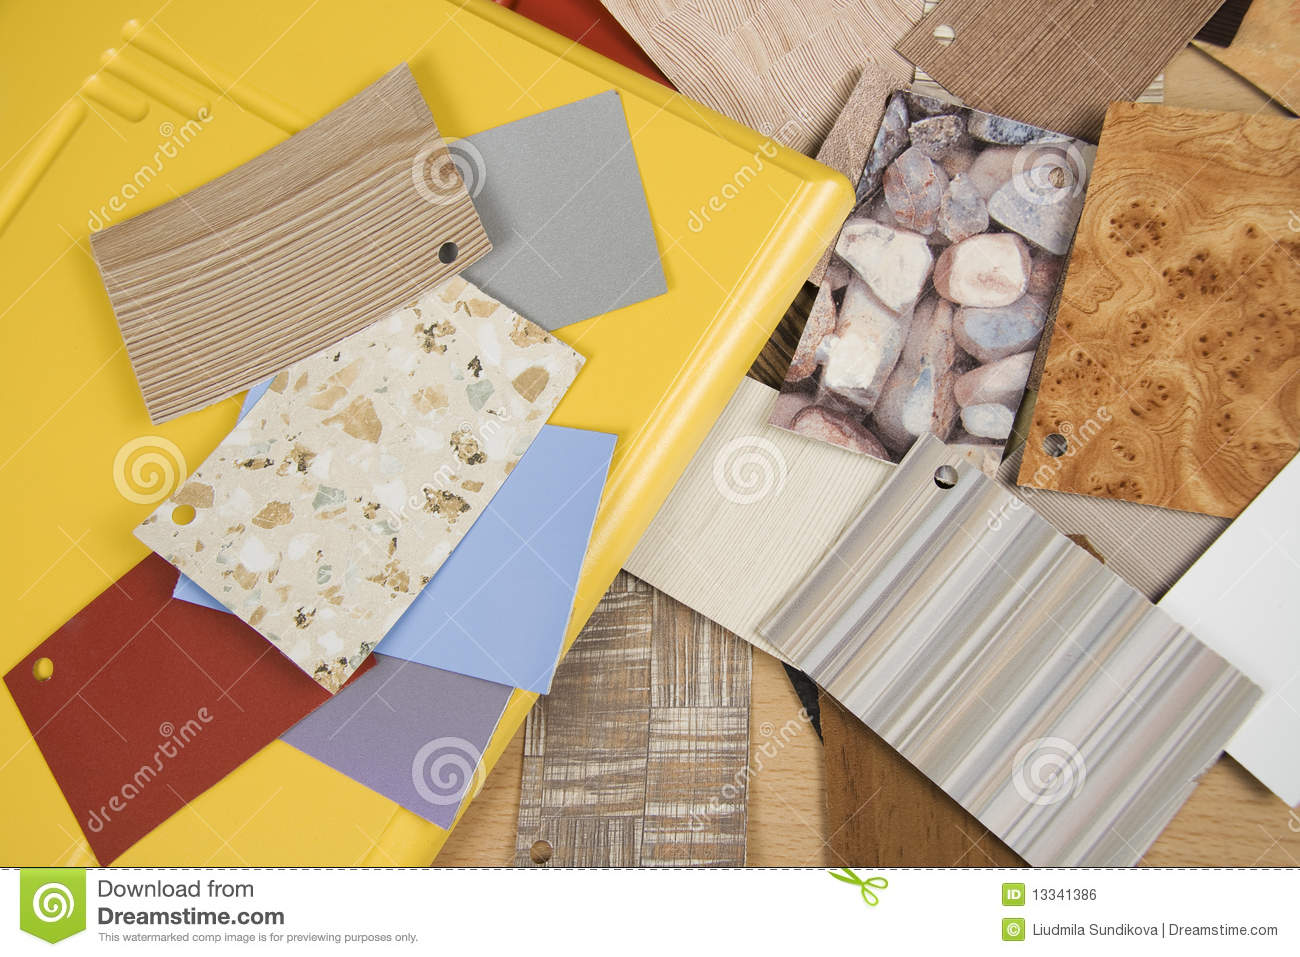 Samples of various texture royalty free stock image for Different interior design concepts